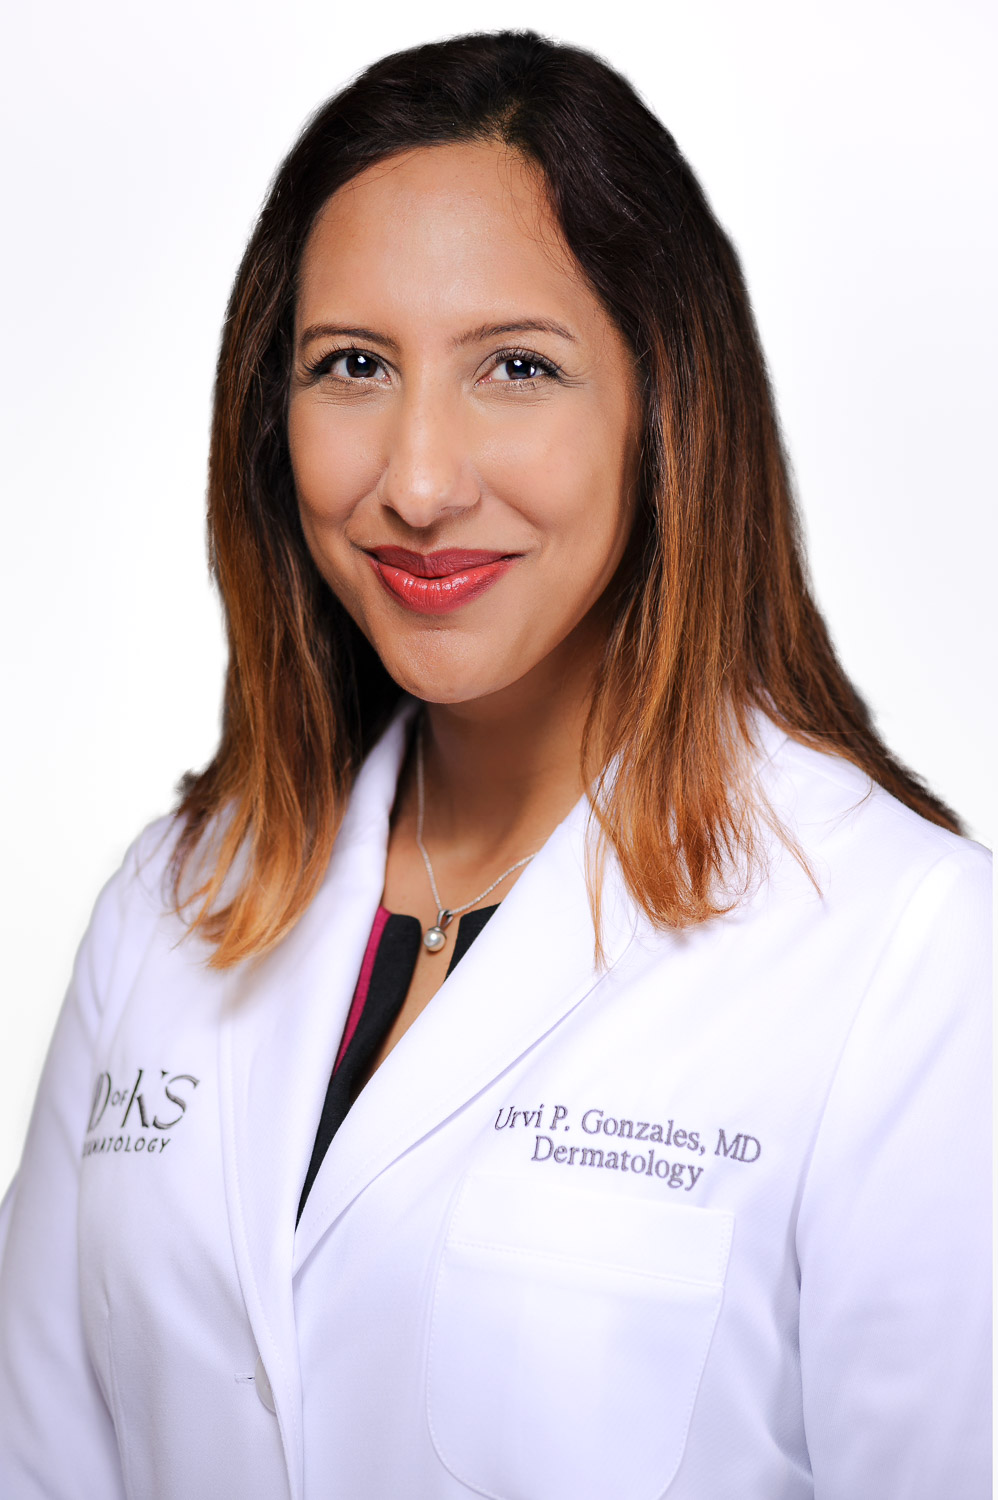 Urvi Gonzales, MD, FAAD — Integrated Dermatology